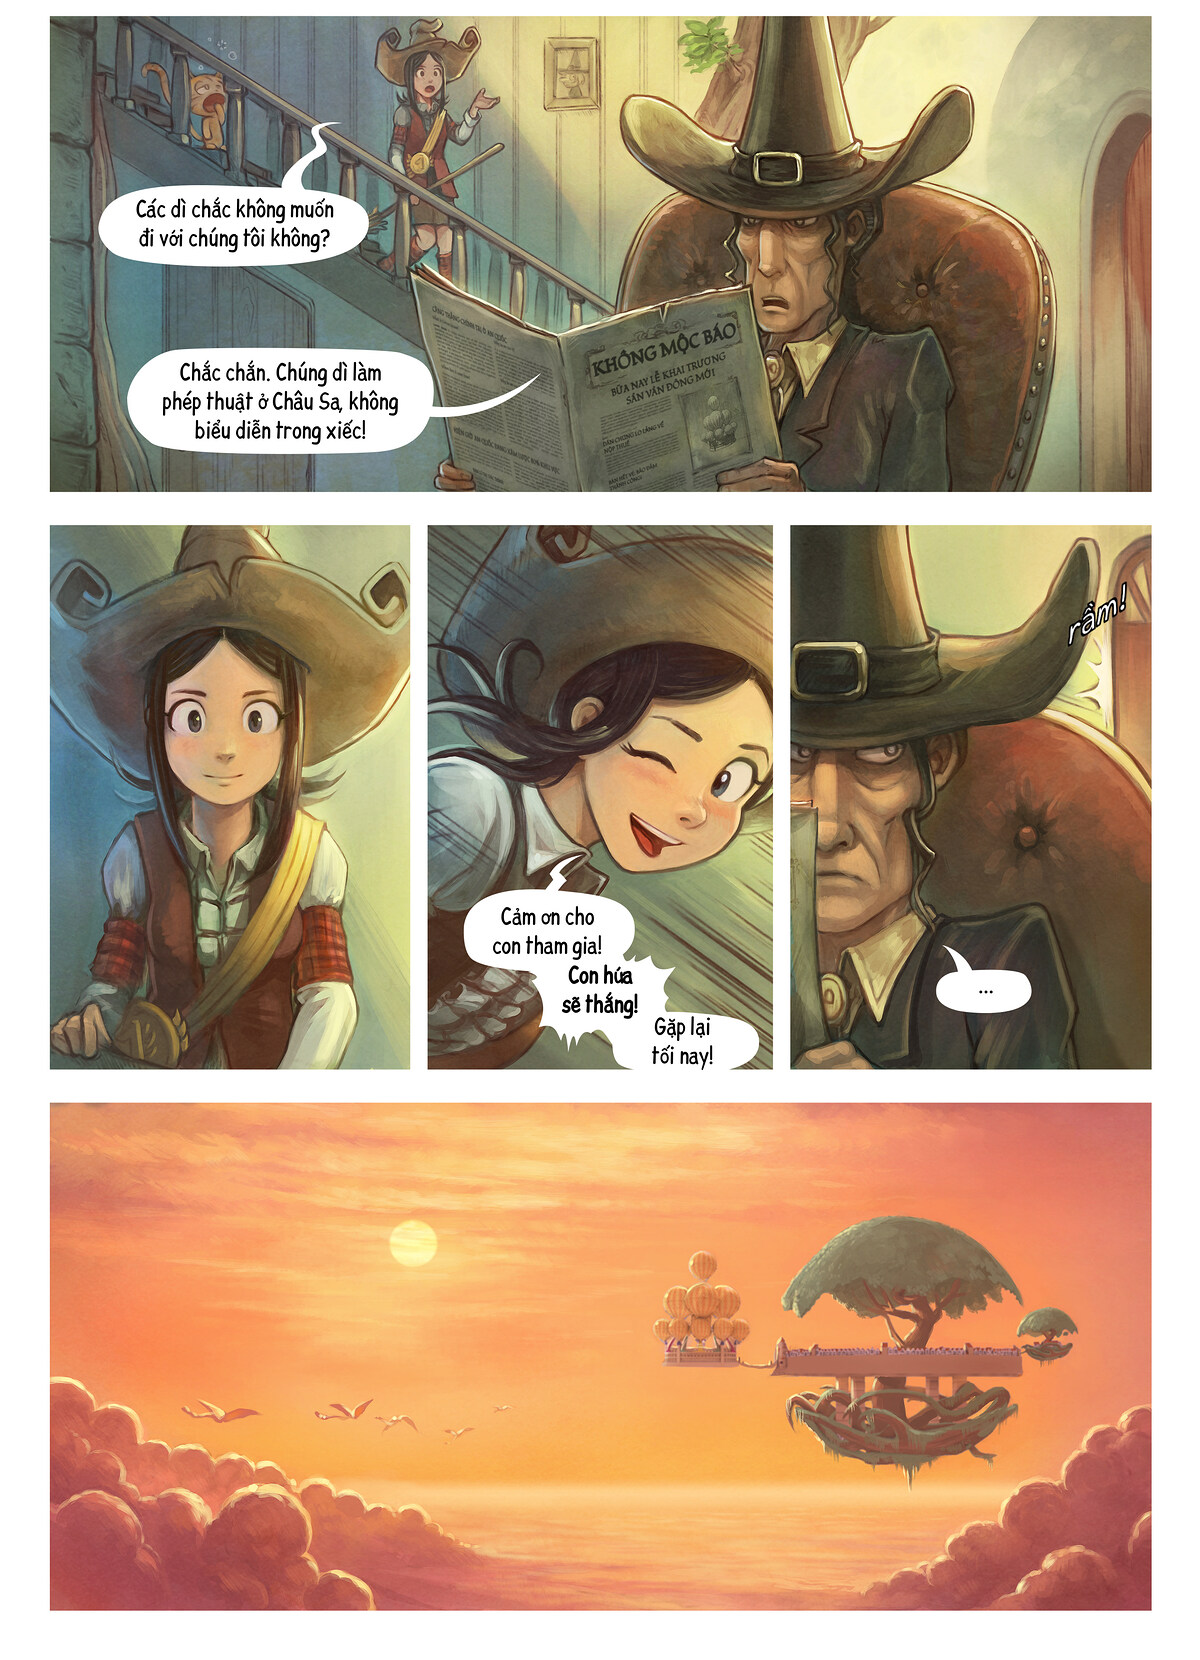 A webcomic page of Pepper&Carrot, Tập 21 [vi], trang 2